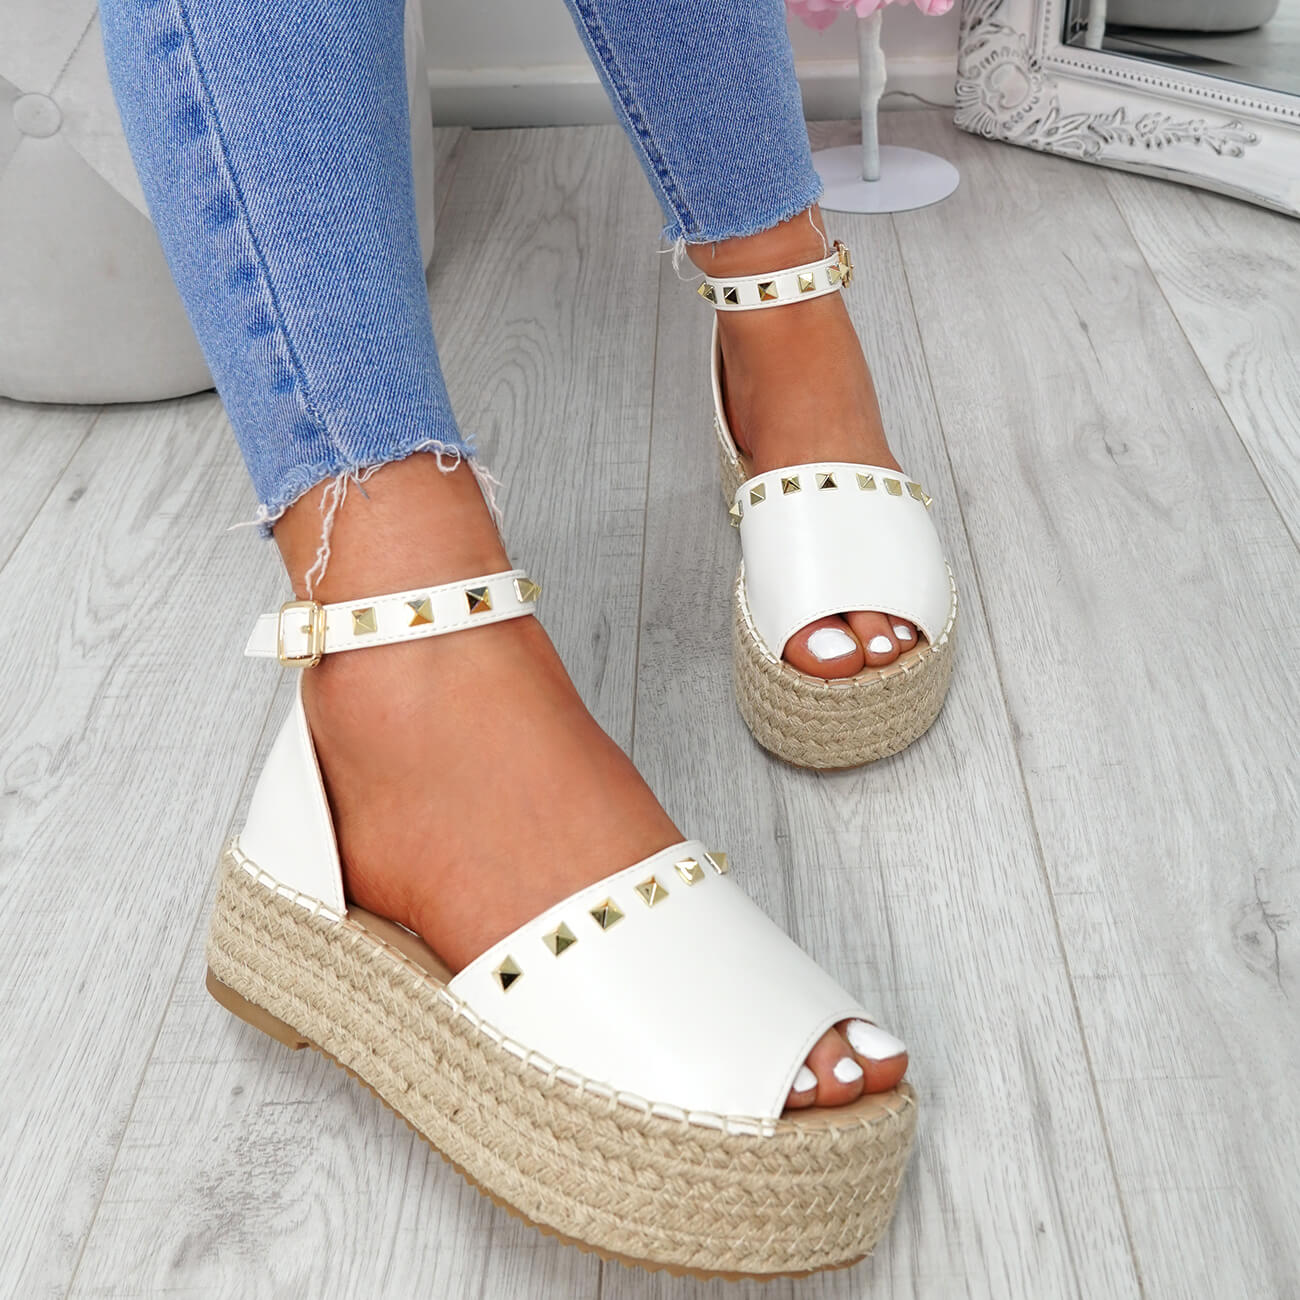 WOMENS-LADIES-ROCK-STUDS-ESPADRILLE-FLATFORM-PLATFORM-SANDALS-CASUAL-SHOES-SIZE thumbnail 23